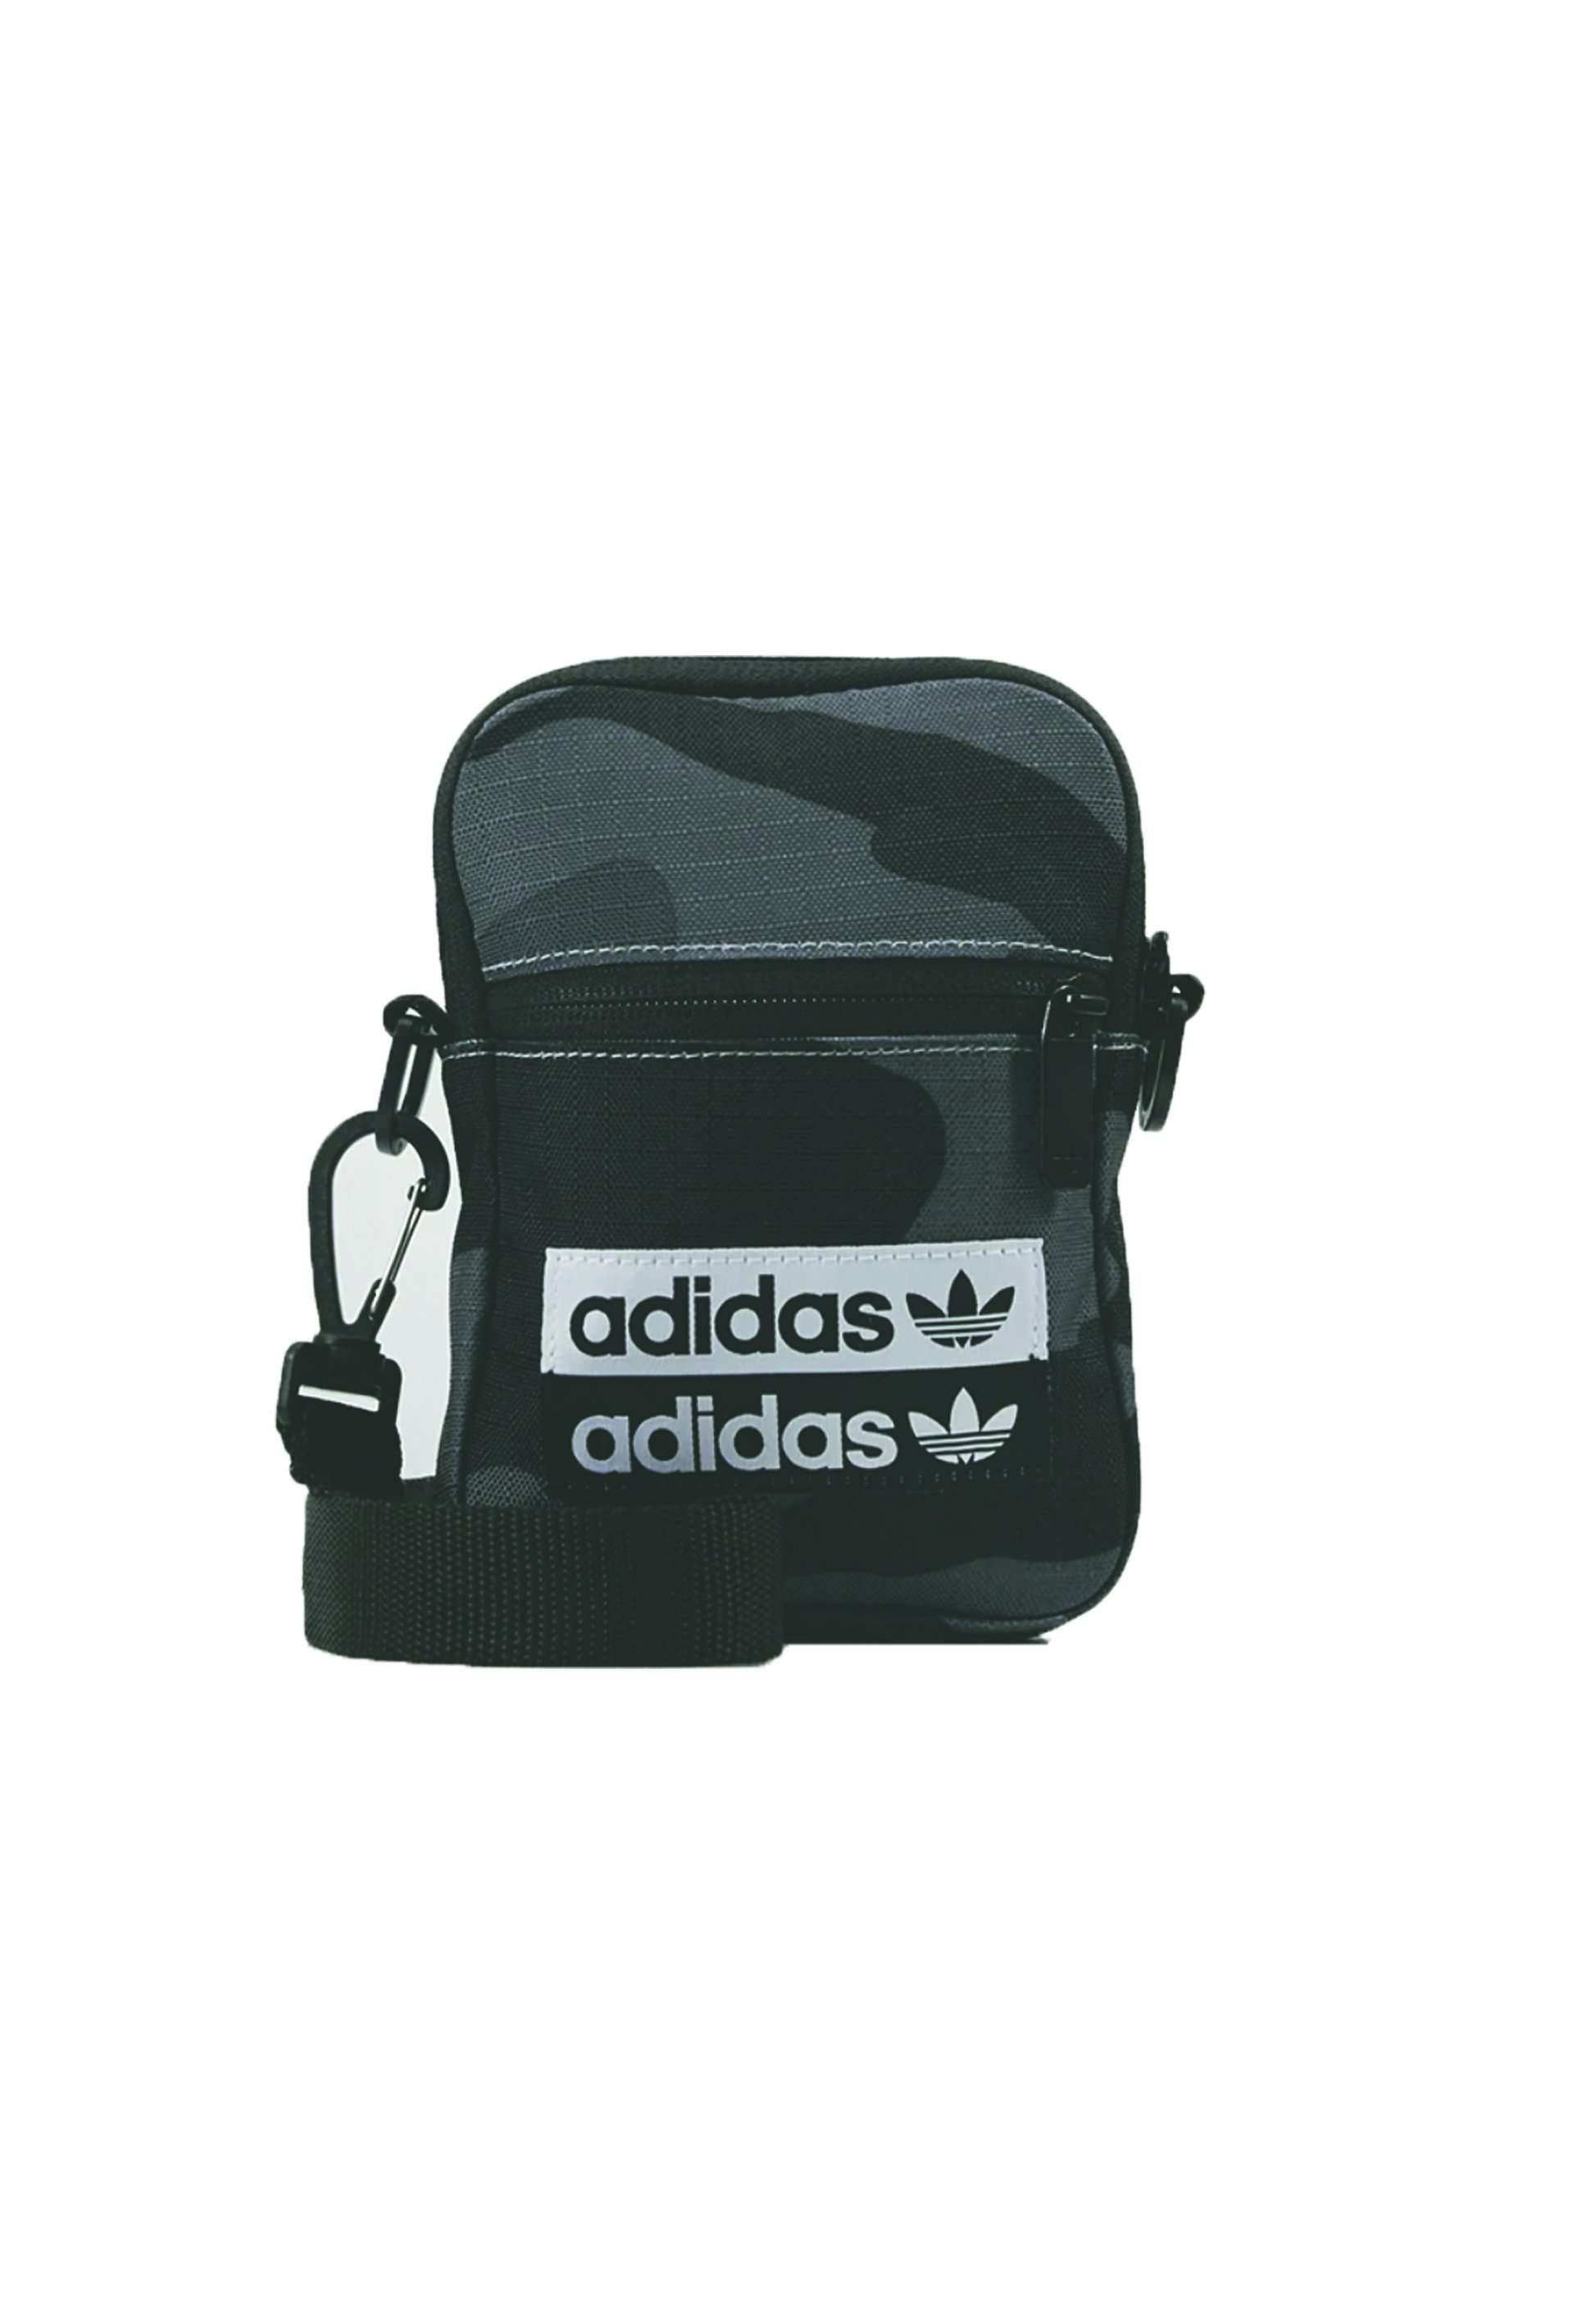 Camo Fest Bag - Multco/MGSOG - Adidas Originals - Sort One Size